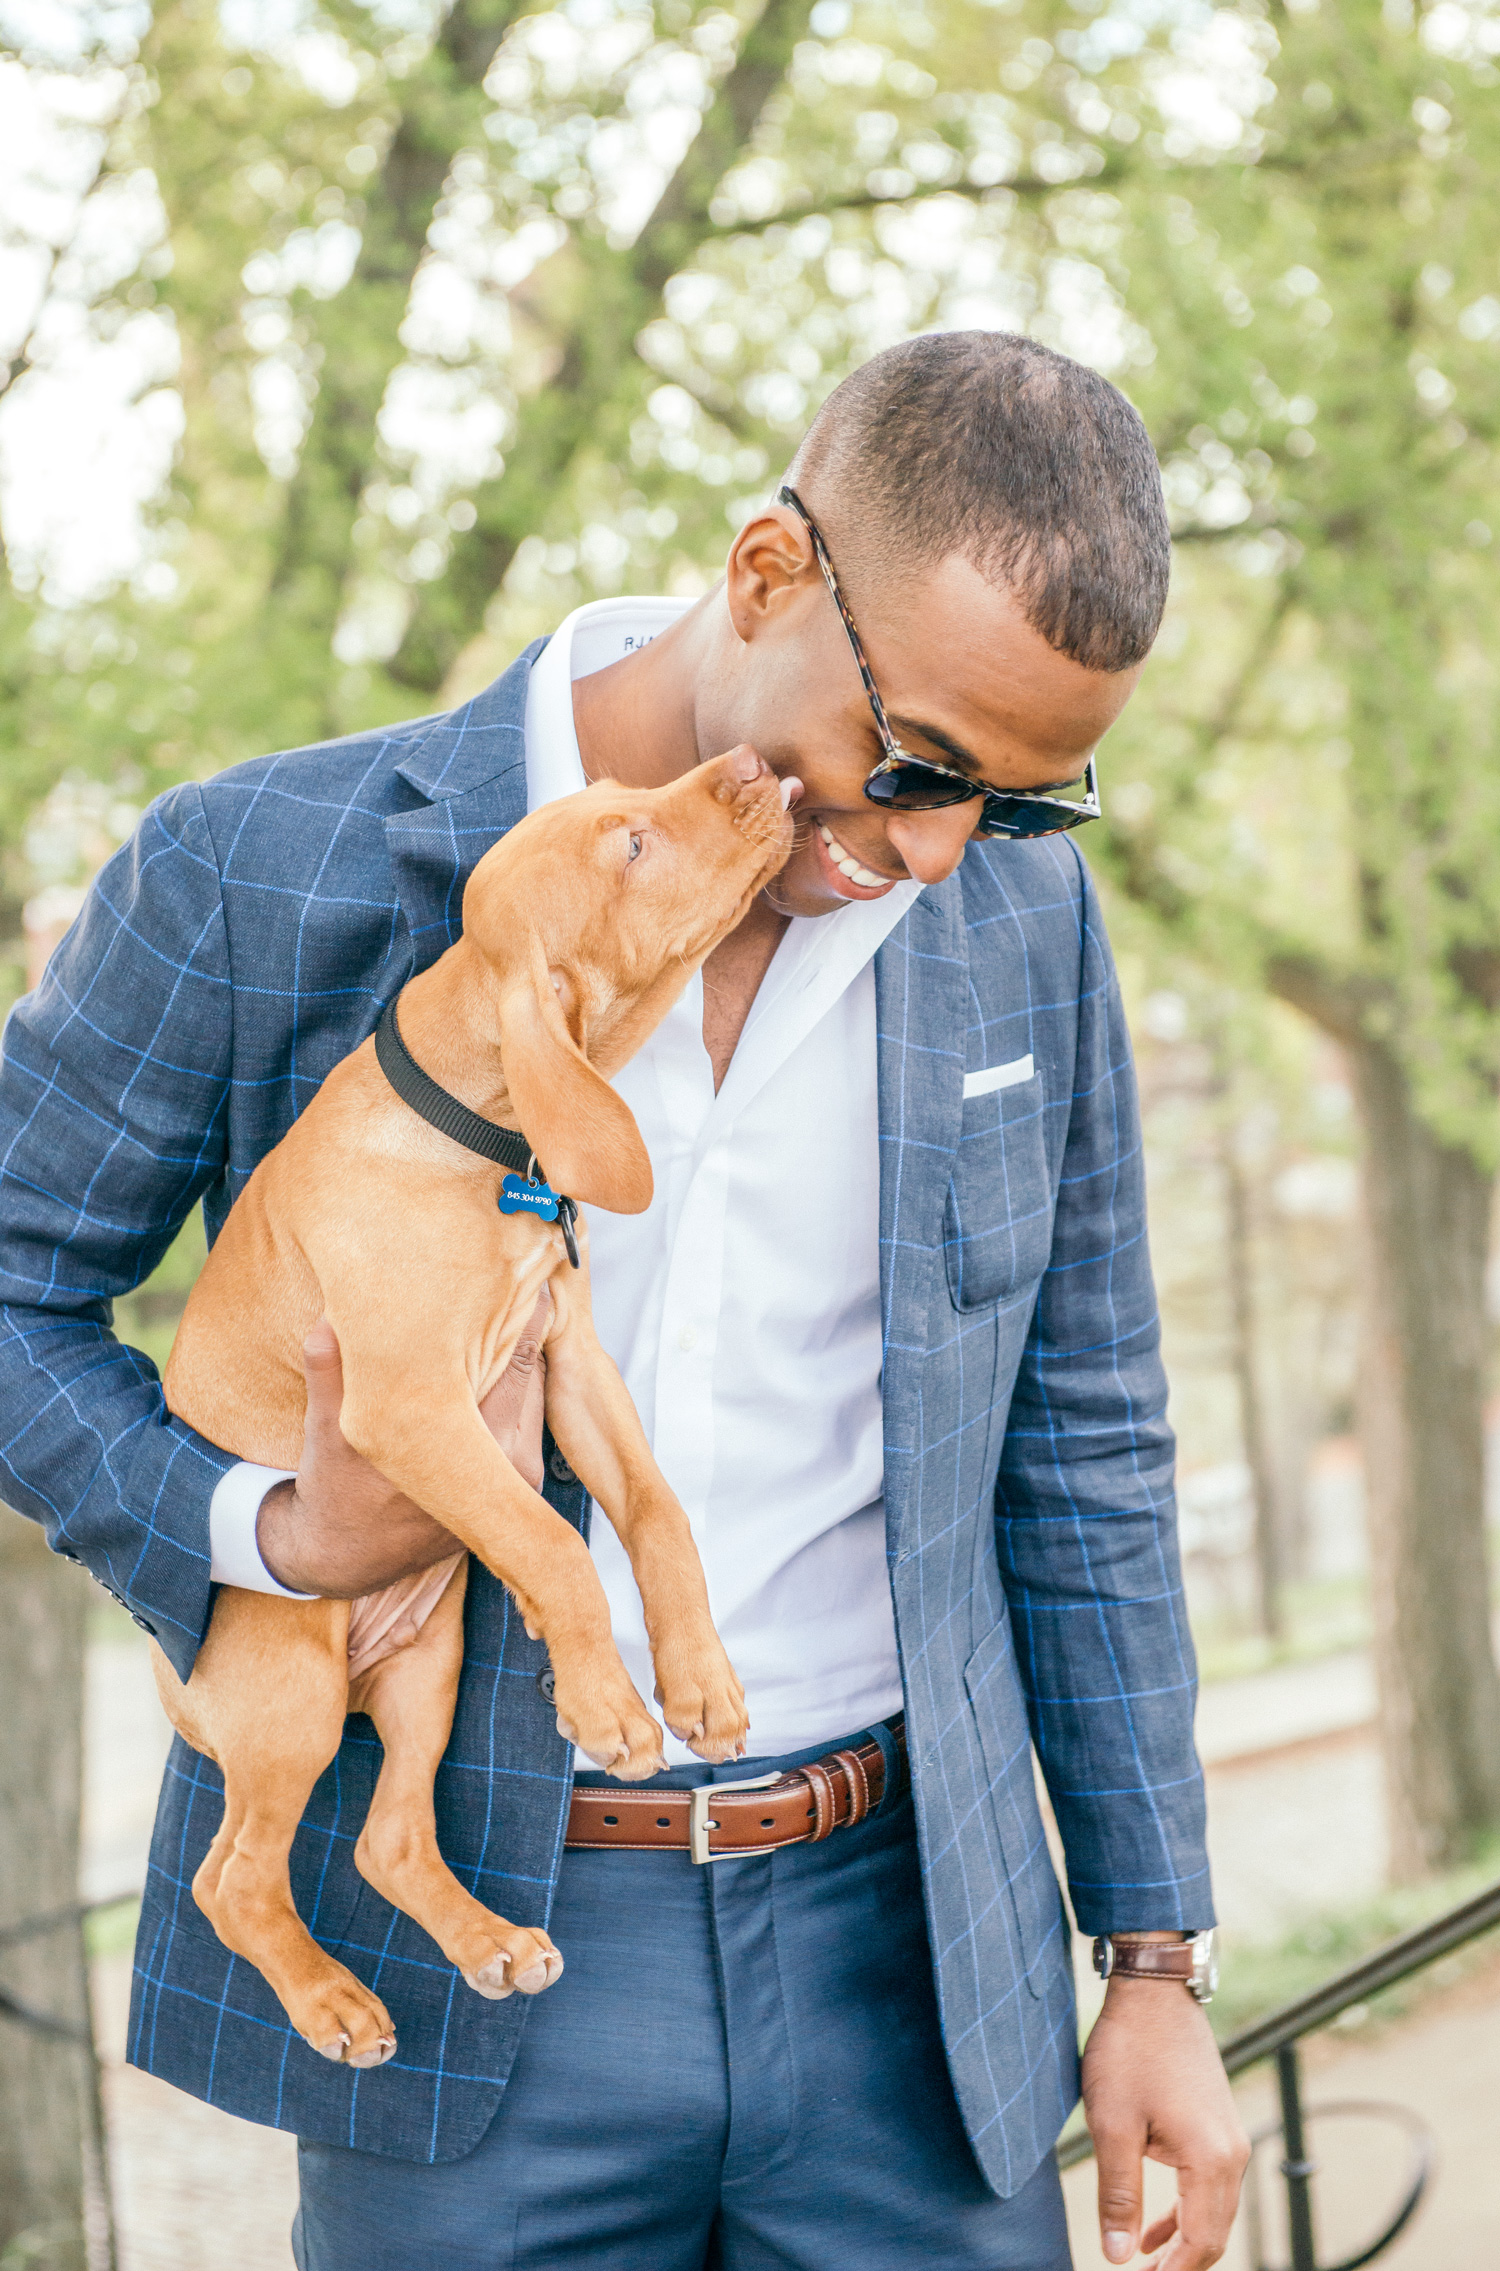 Man in suit with puppy